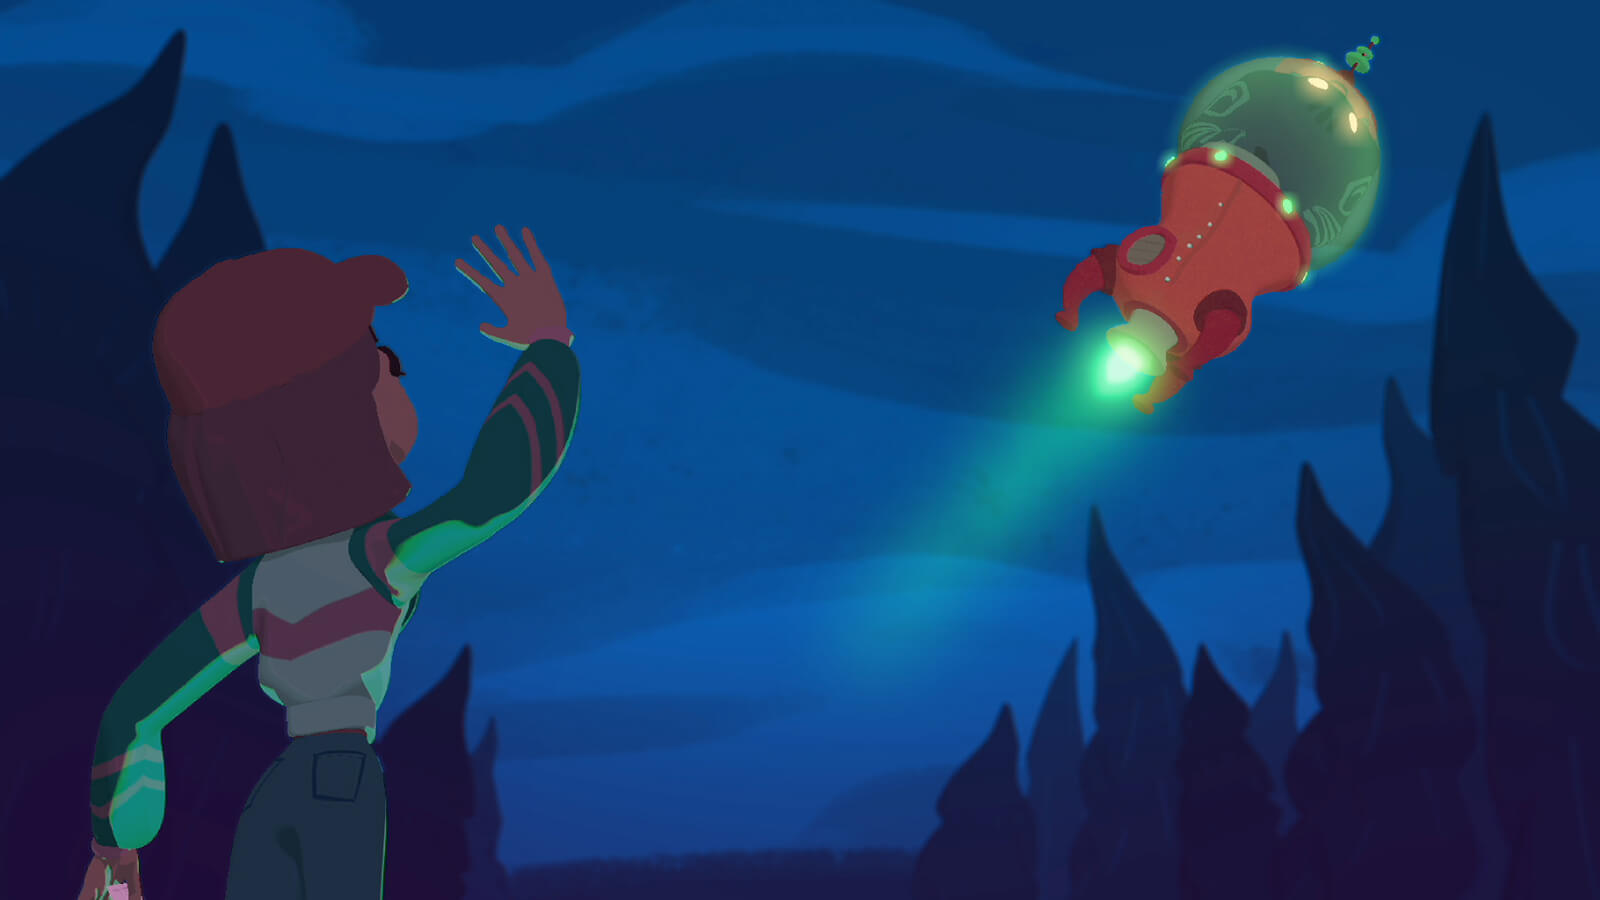 A young girl waves at a red rocket ship as it blasts off into the night sky.